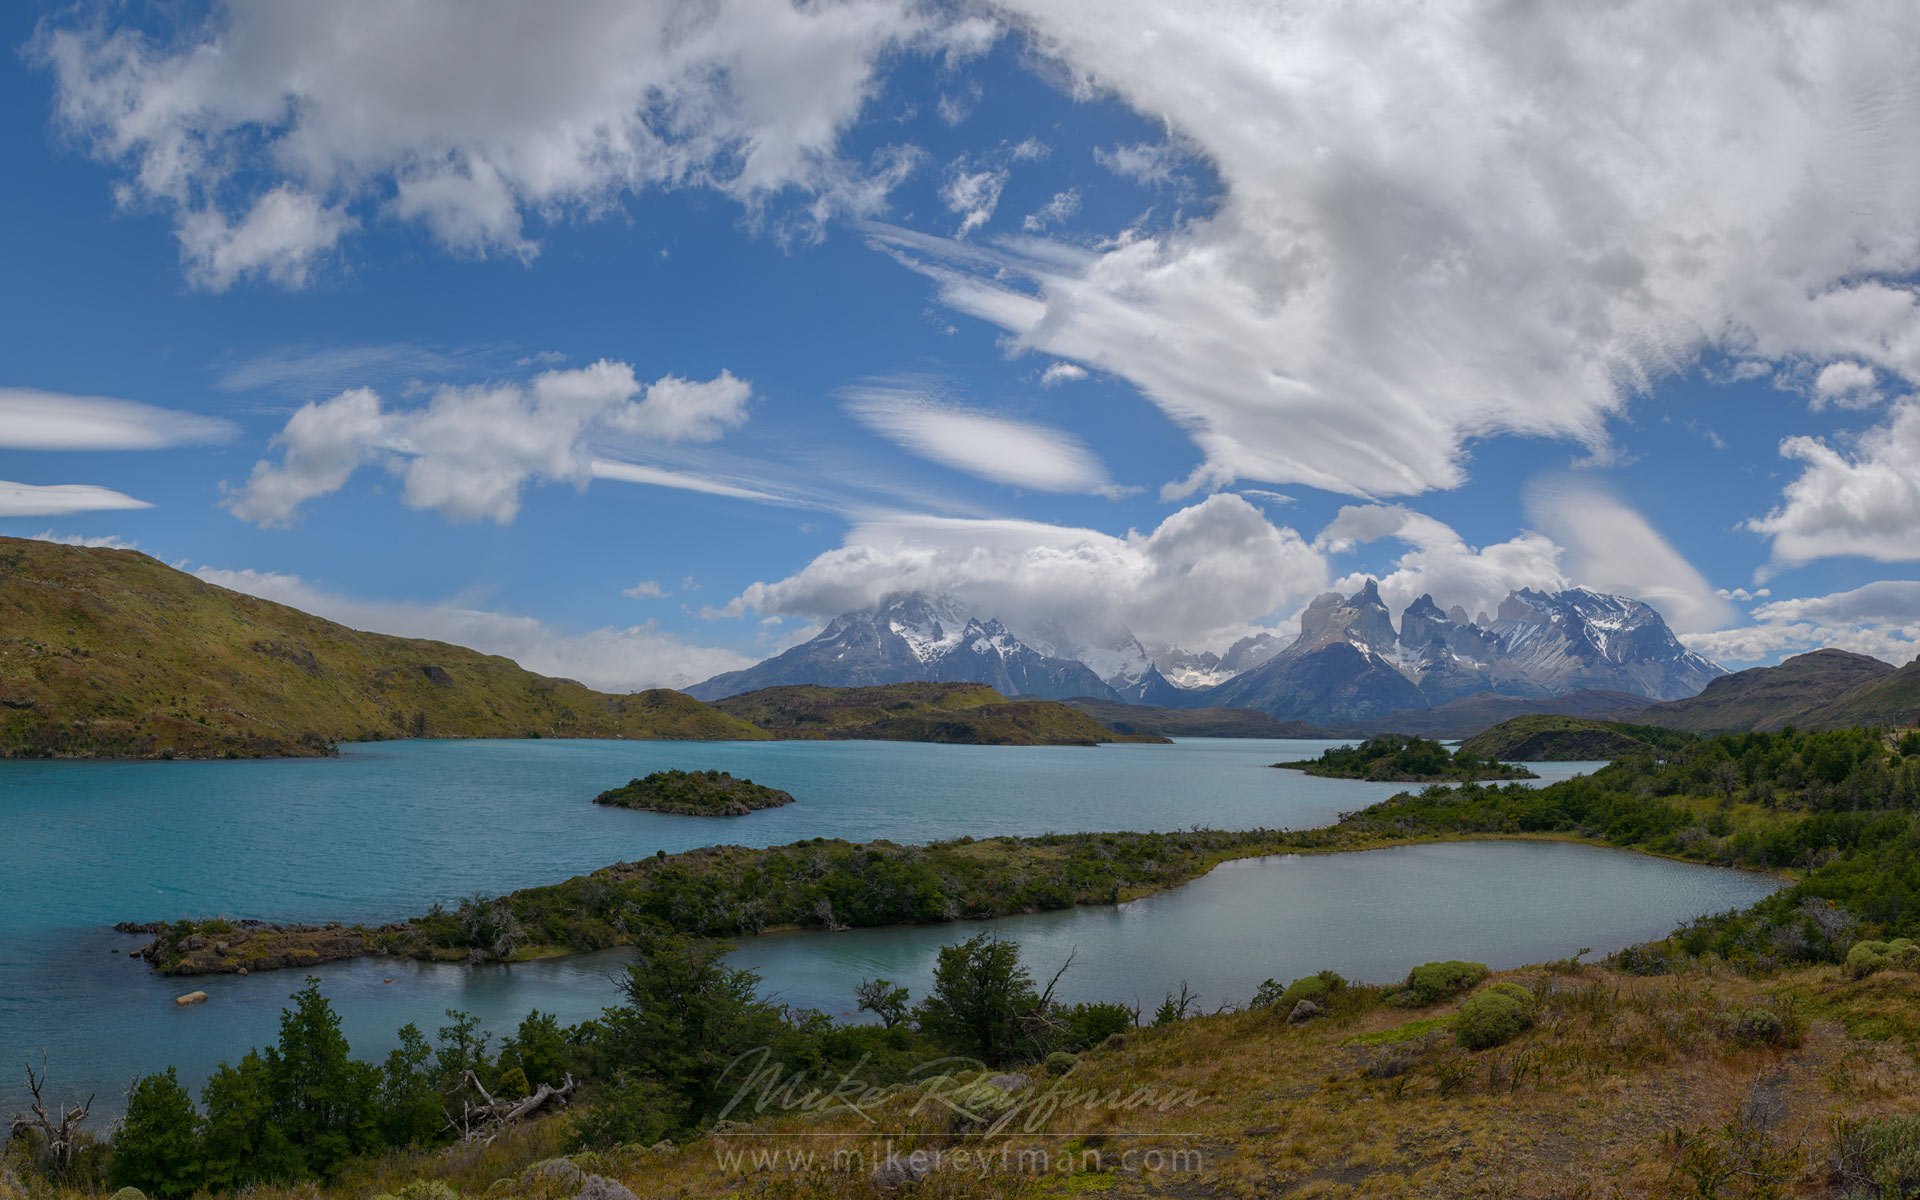 Panoramic view of Lago Pehoe and Cordillera del Paine from Explora Loge. Torres del Paine National Park, Ultima Esperanza Province, Magallanes and Antartica Chilena Region XII, Patagonia, Chile. - Torres-Del-Paine-National-Park-Patagonia-Chile - Mike Reyfman Photography